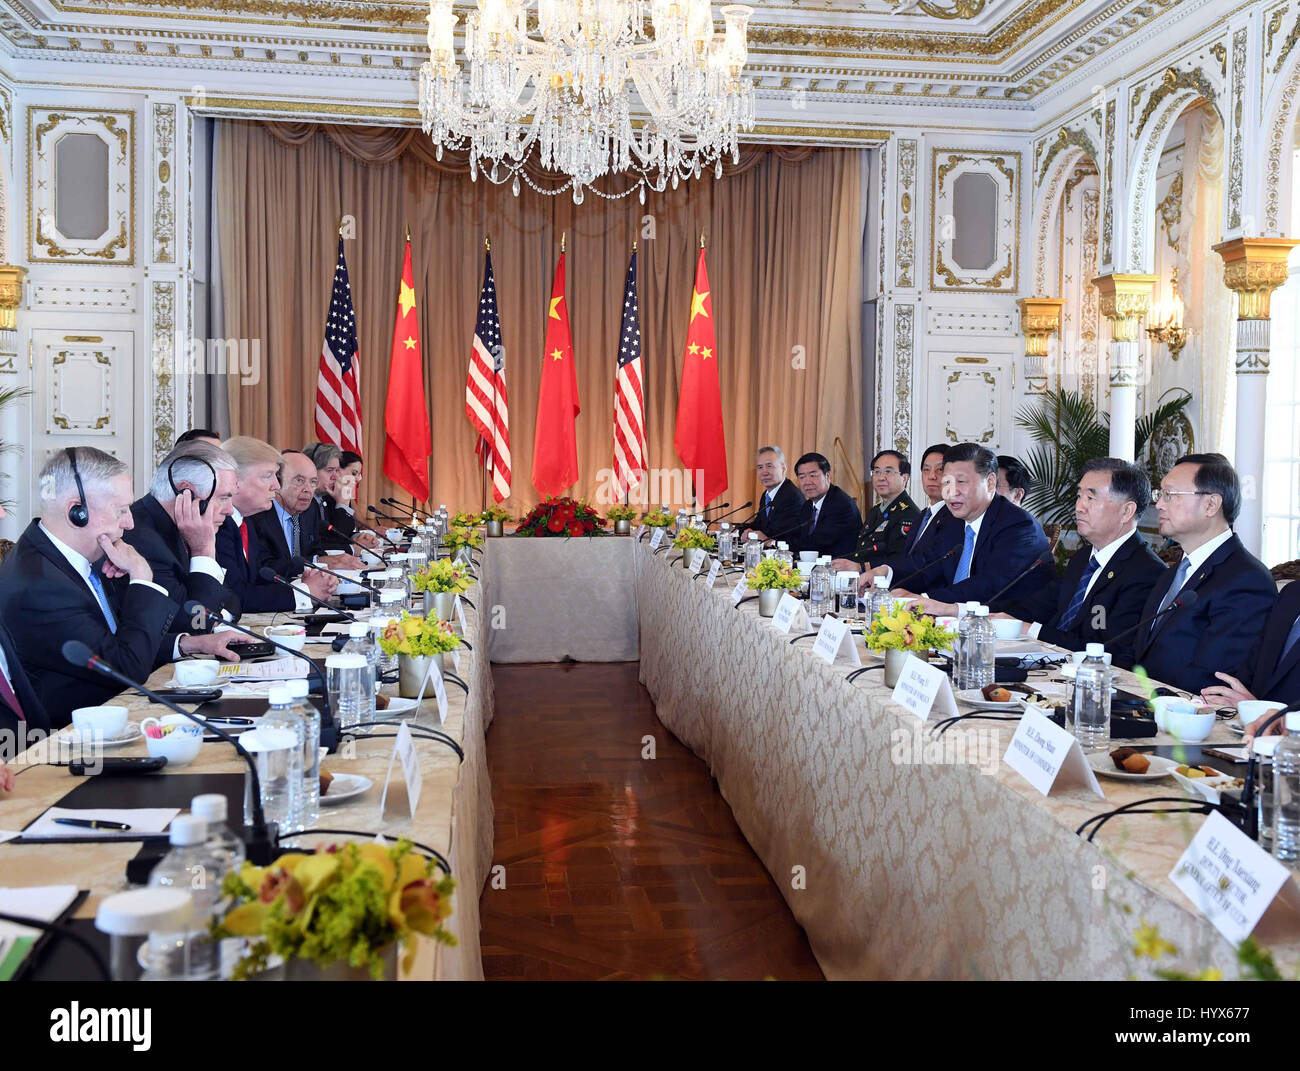 Mar-a-Lago, Florida, USA. 07th Apr, 2017. Chinese President Xi Jinping (3rd R) and his U.S. counterpart Donald Trump - Stock Image